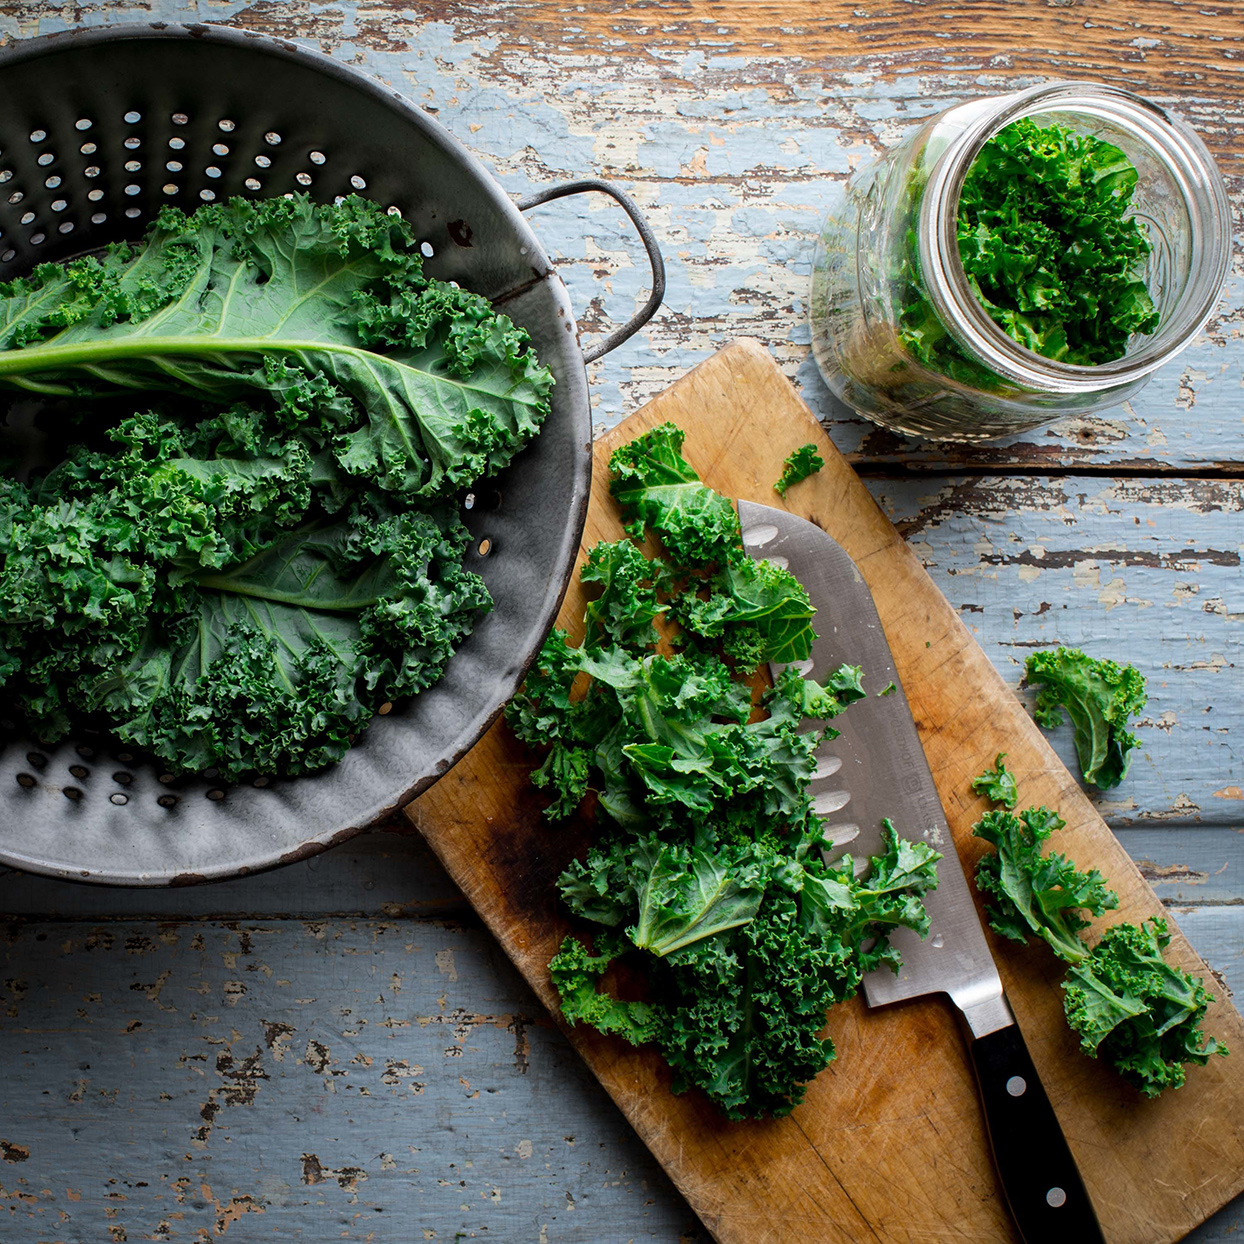 Colander and cutting board with kale